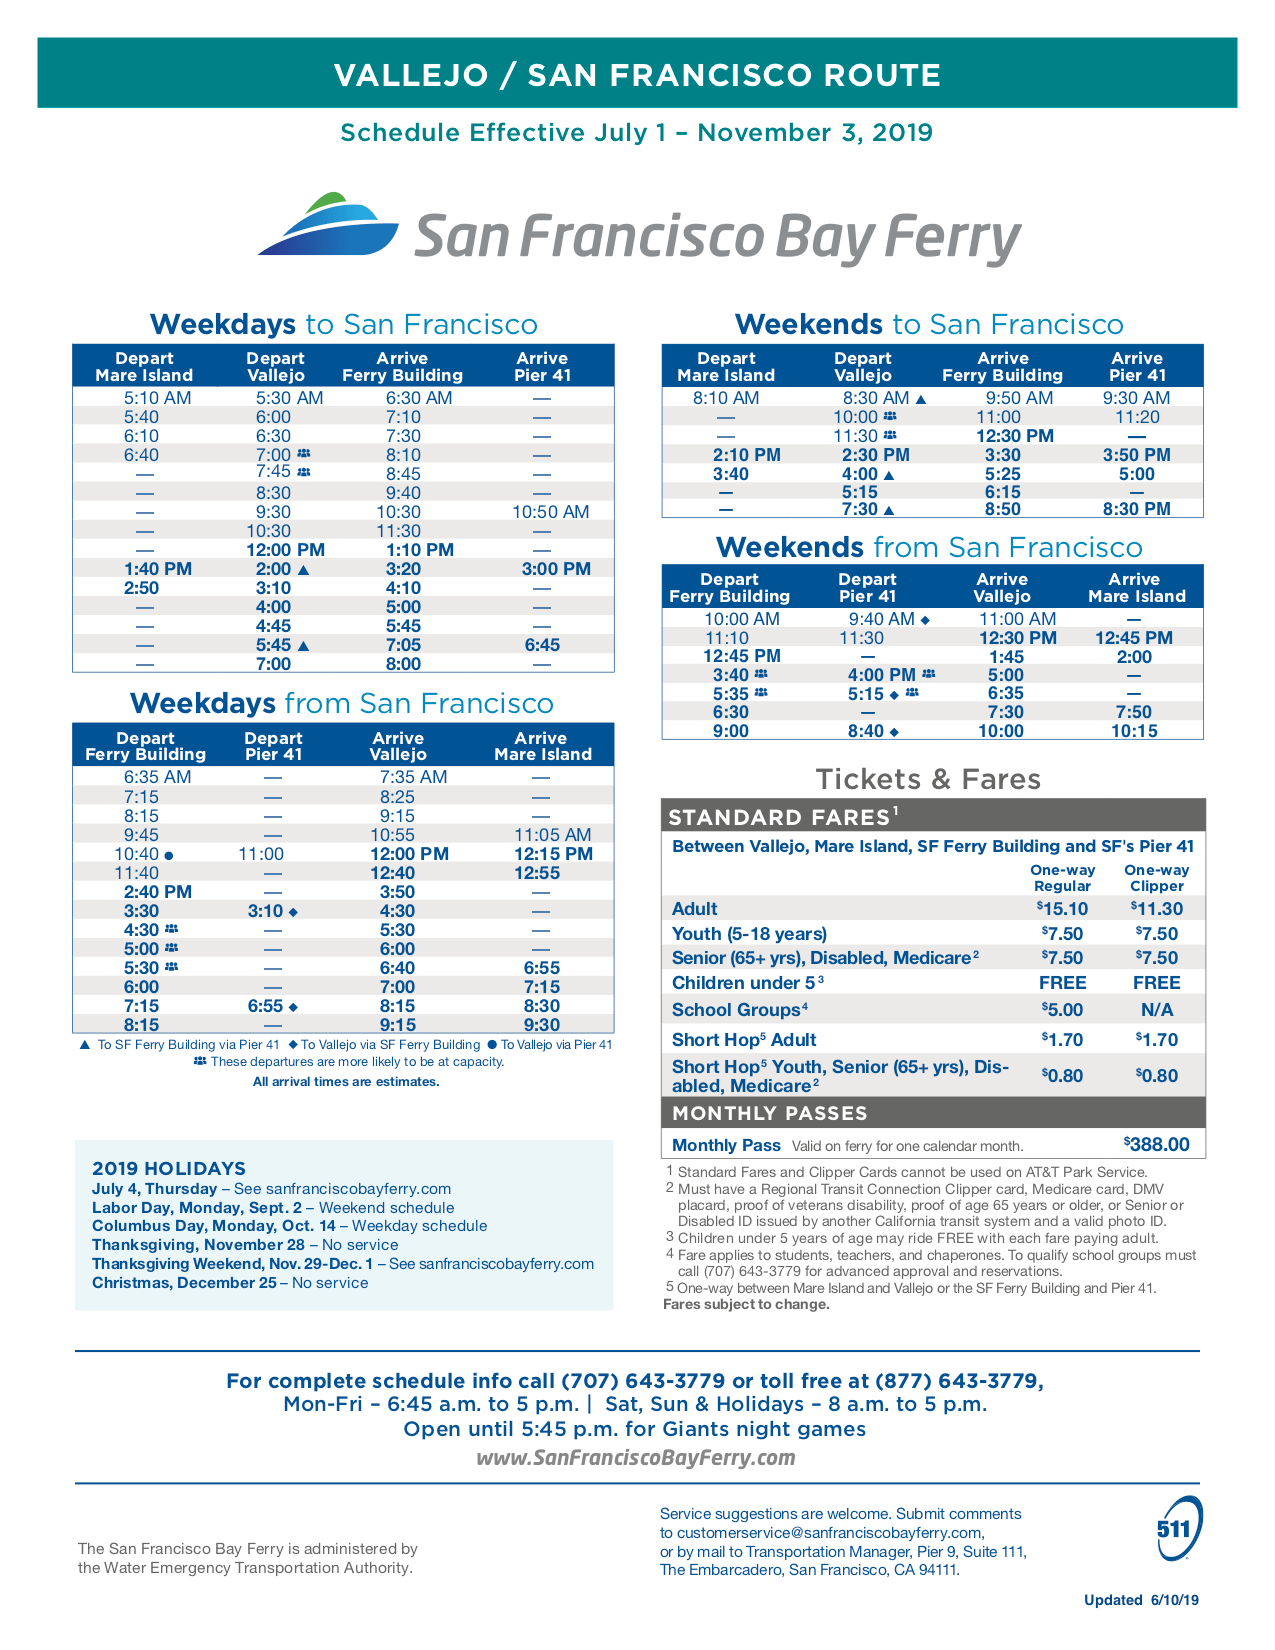 Vallejo Ferry Schedule - Vallejo Bay Ferry